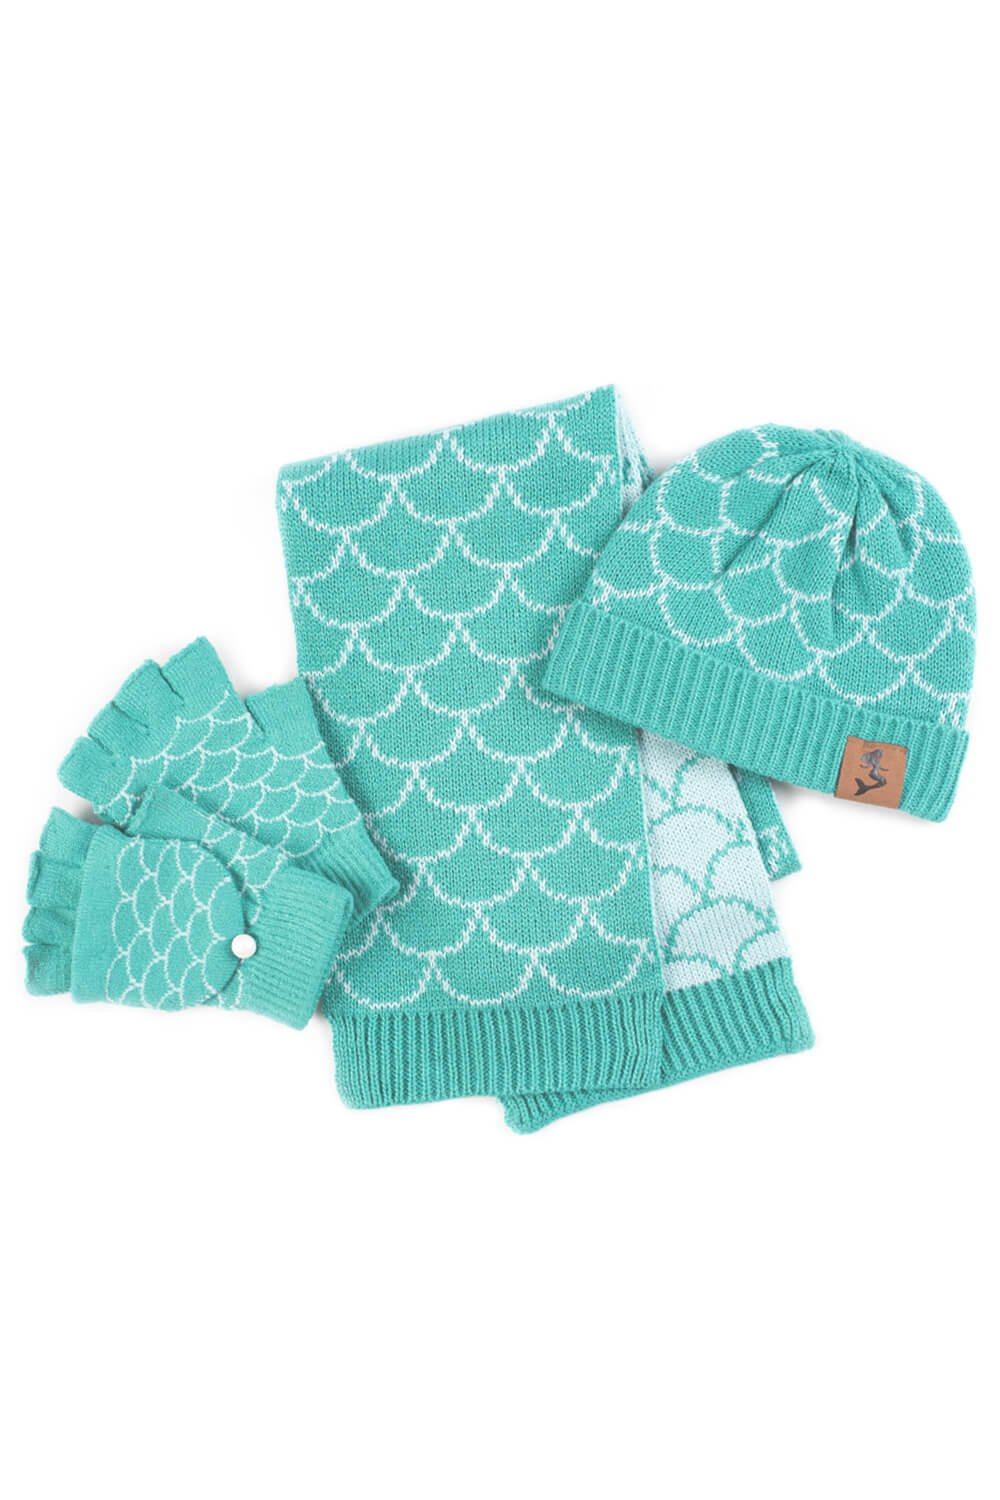 Fin Fun Mermaid Scales Hat, Gloves, Scarf Set for Girls and Adults